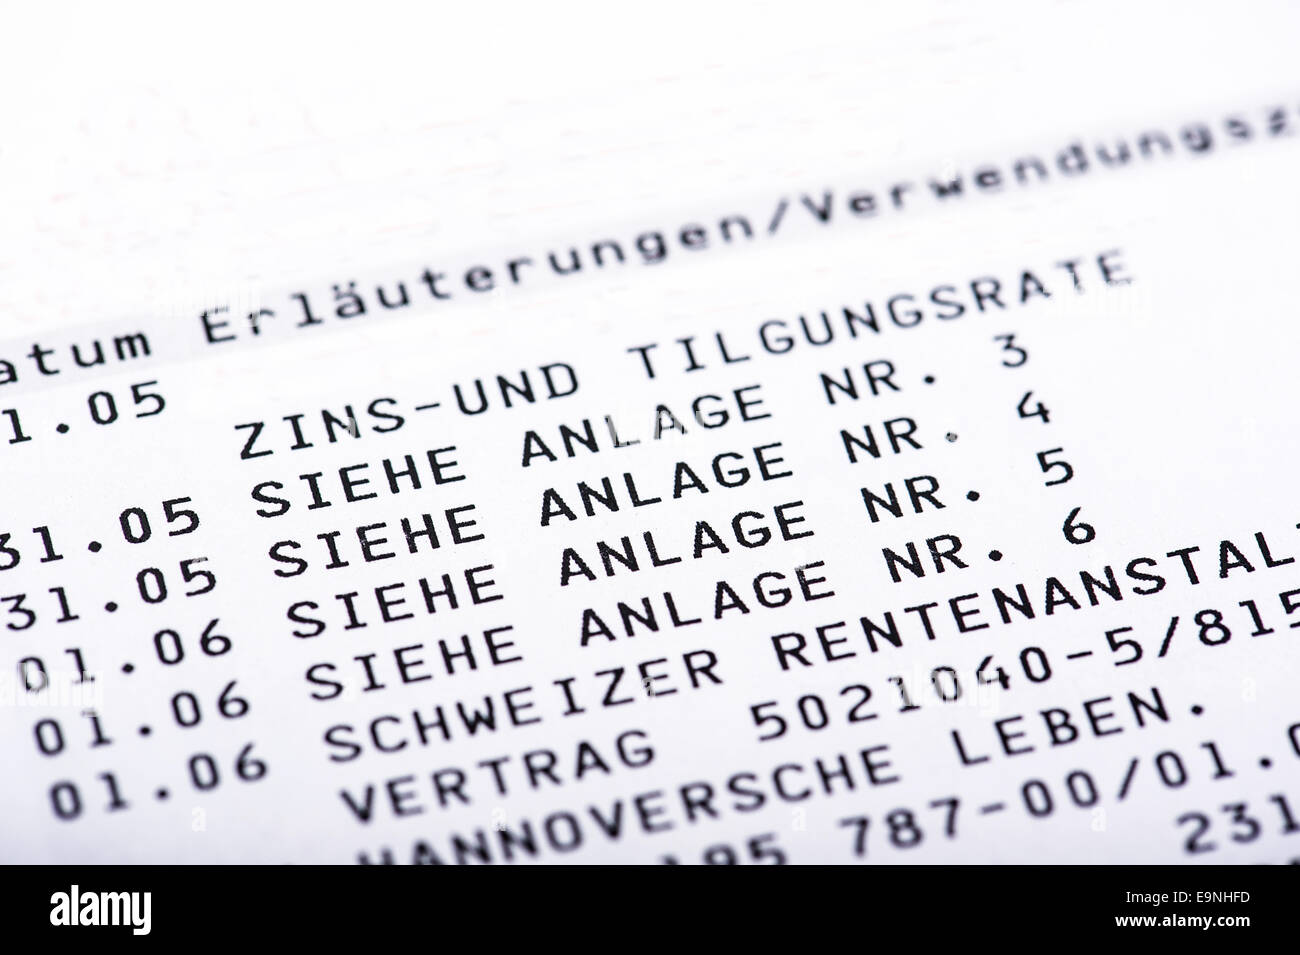 Bank statement with attachments Stock Photo